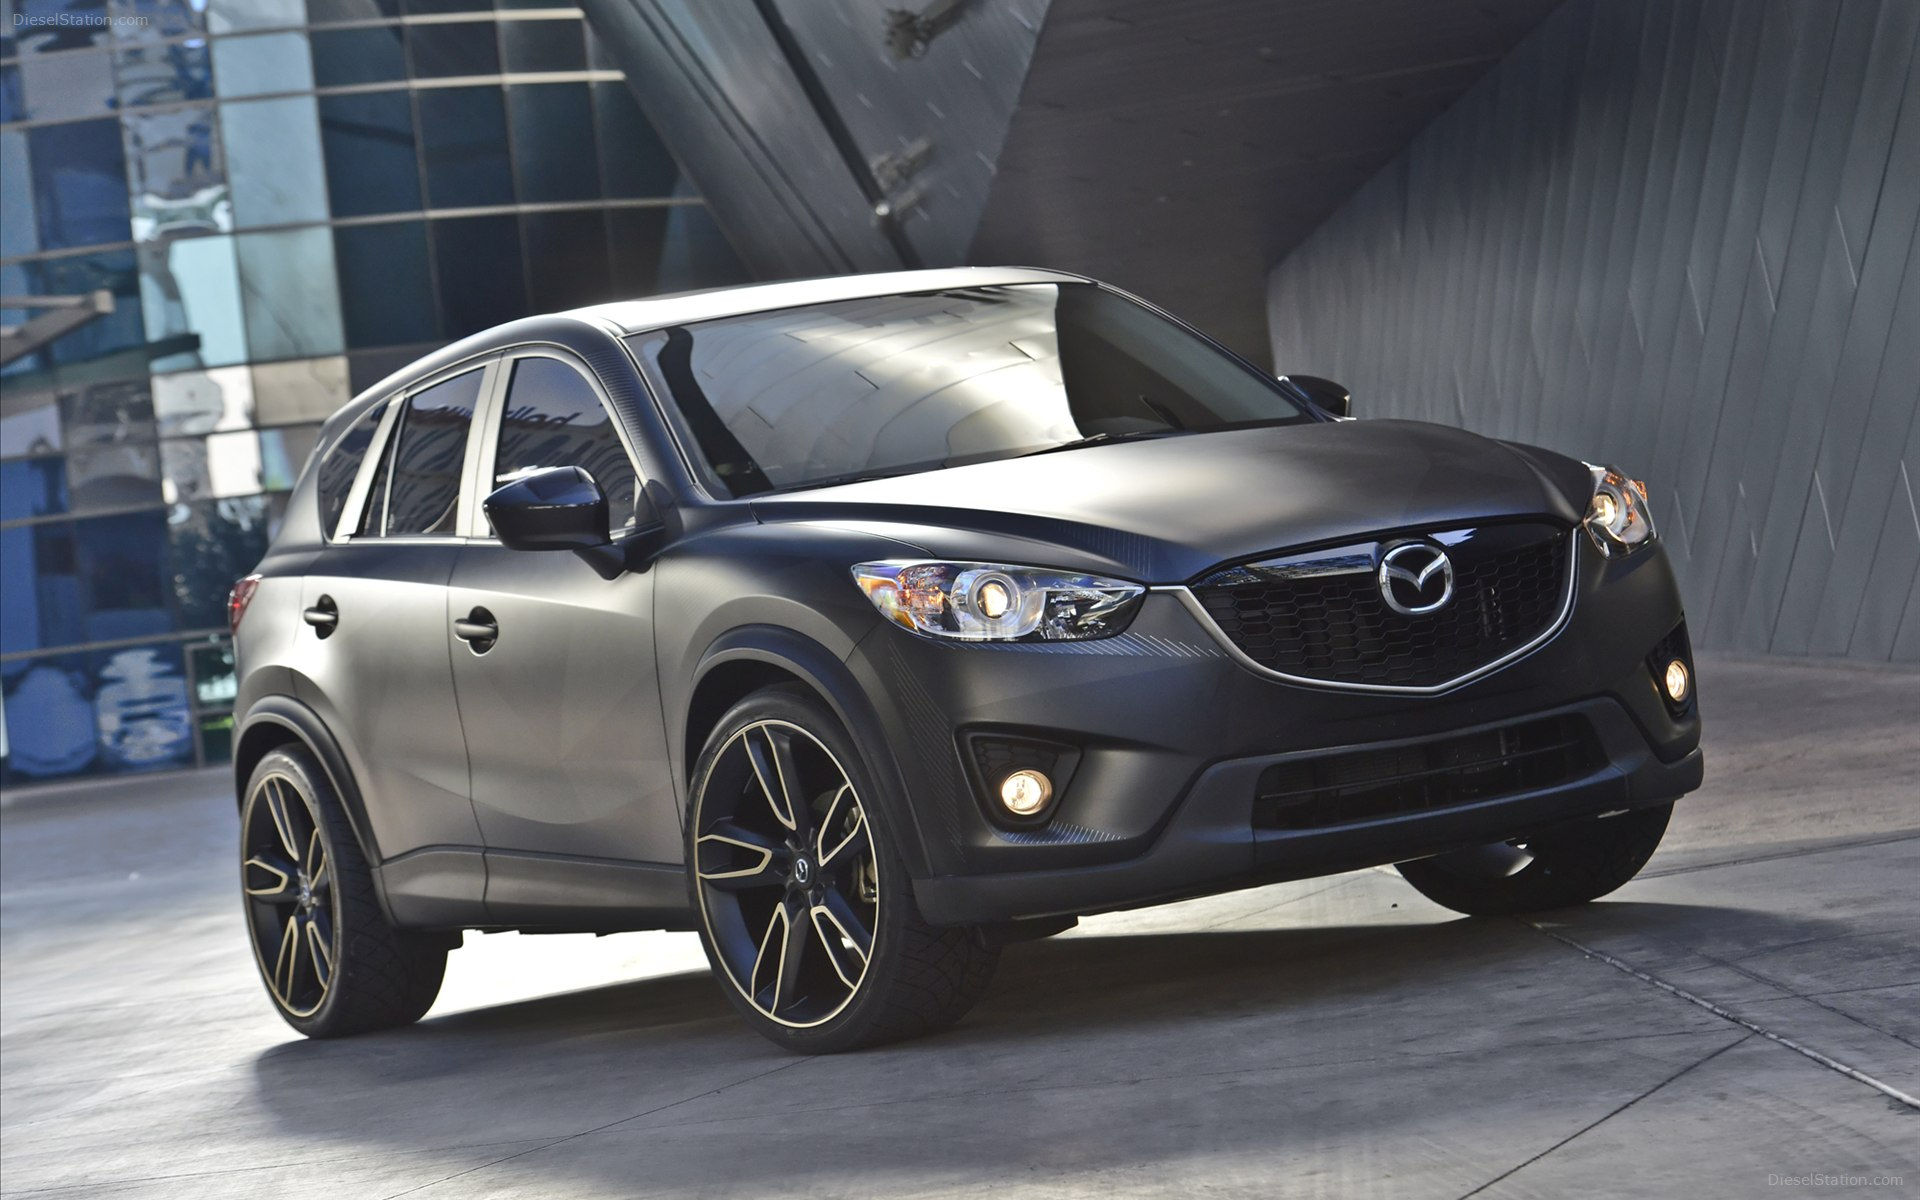 1920x1200 - Mazda CX-5 Wallpapers 17